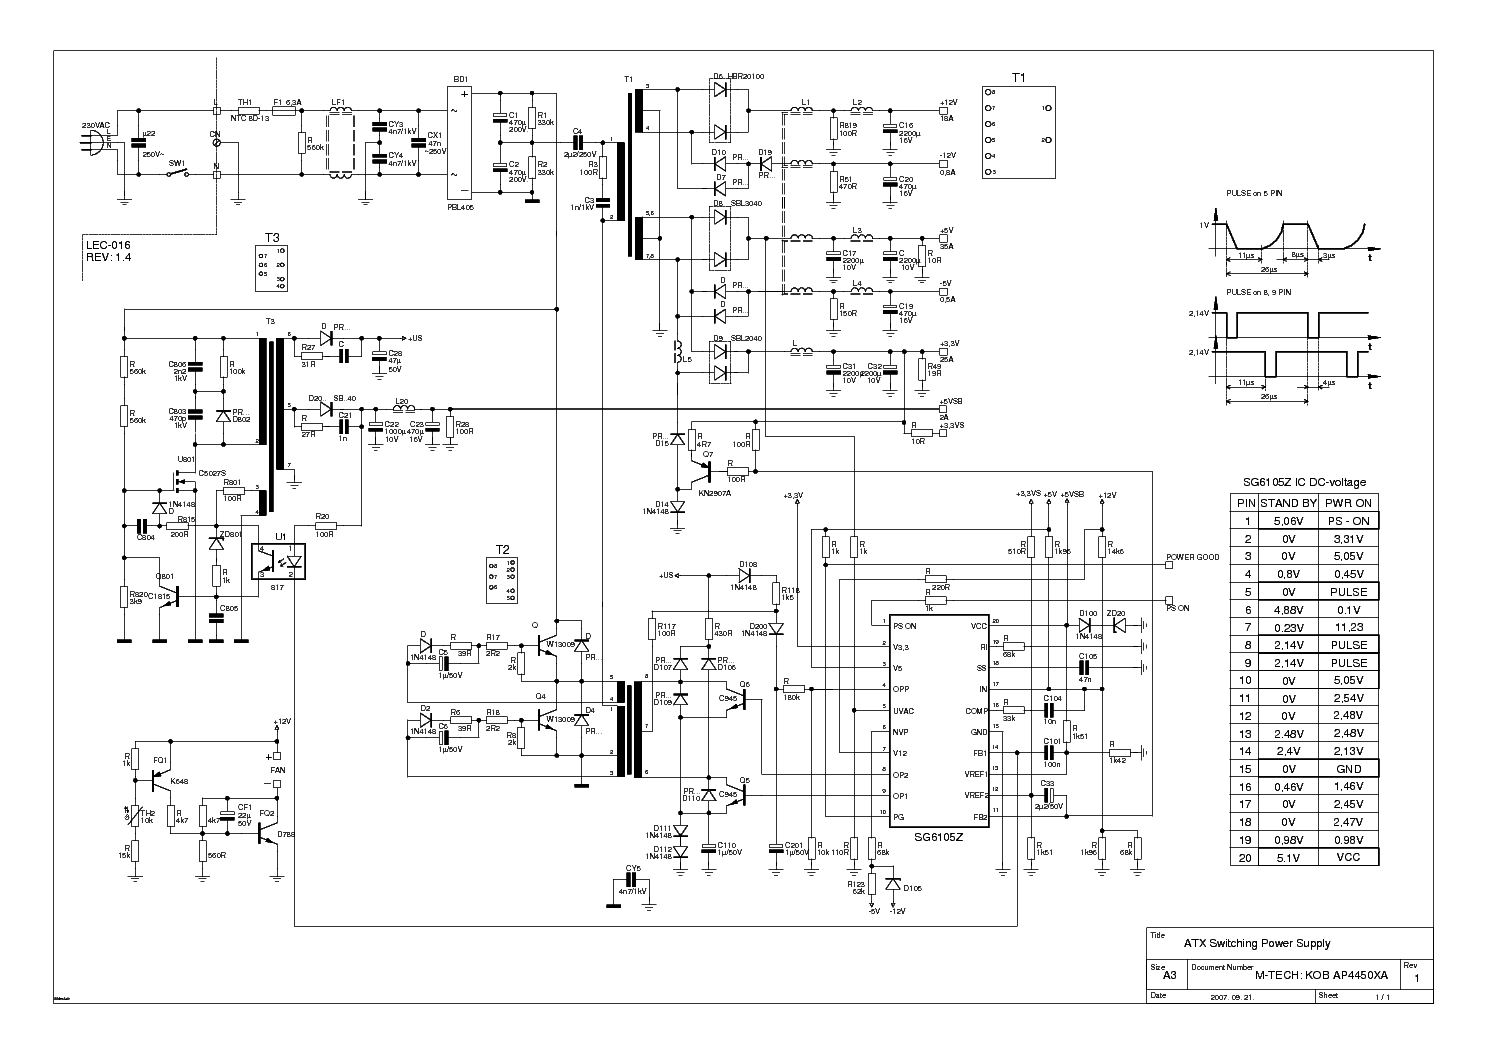 ATX Power Supply Schematic http://elektrotanya.com/m-tech_kob-ap4450xa_atx-power-supply_450w_sch.pdf/download.html